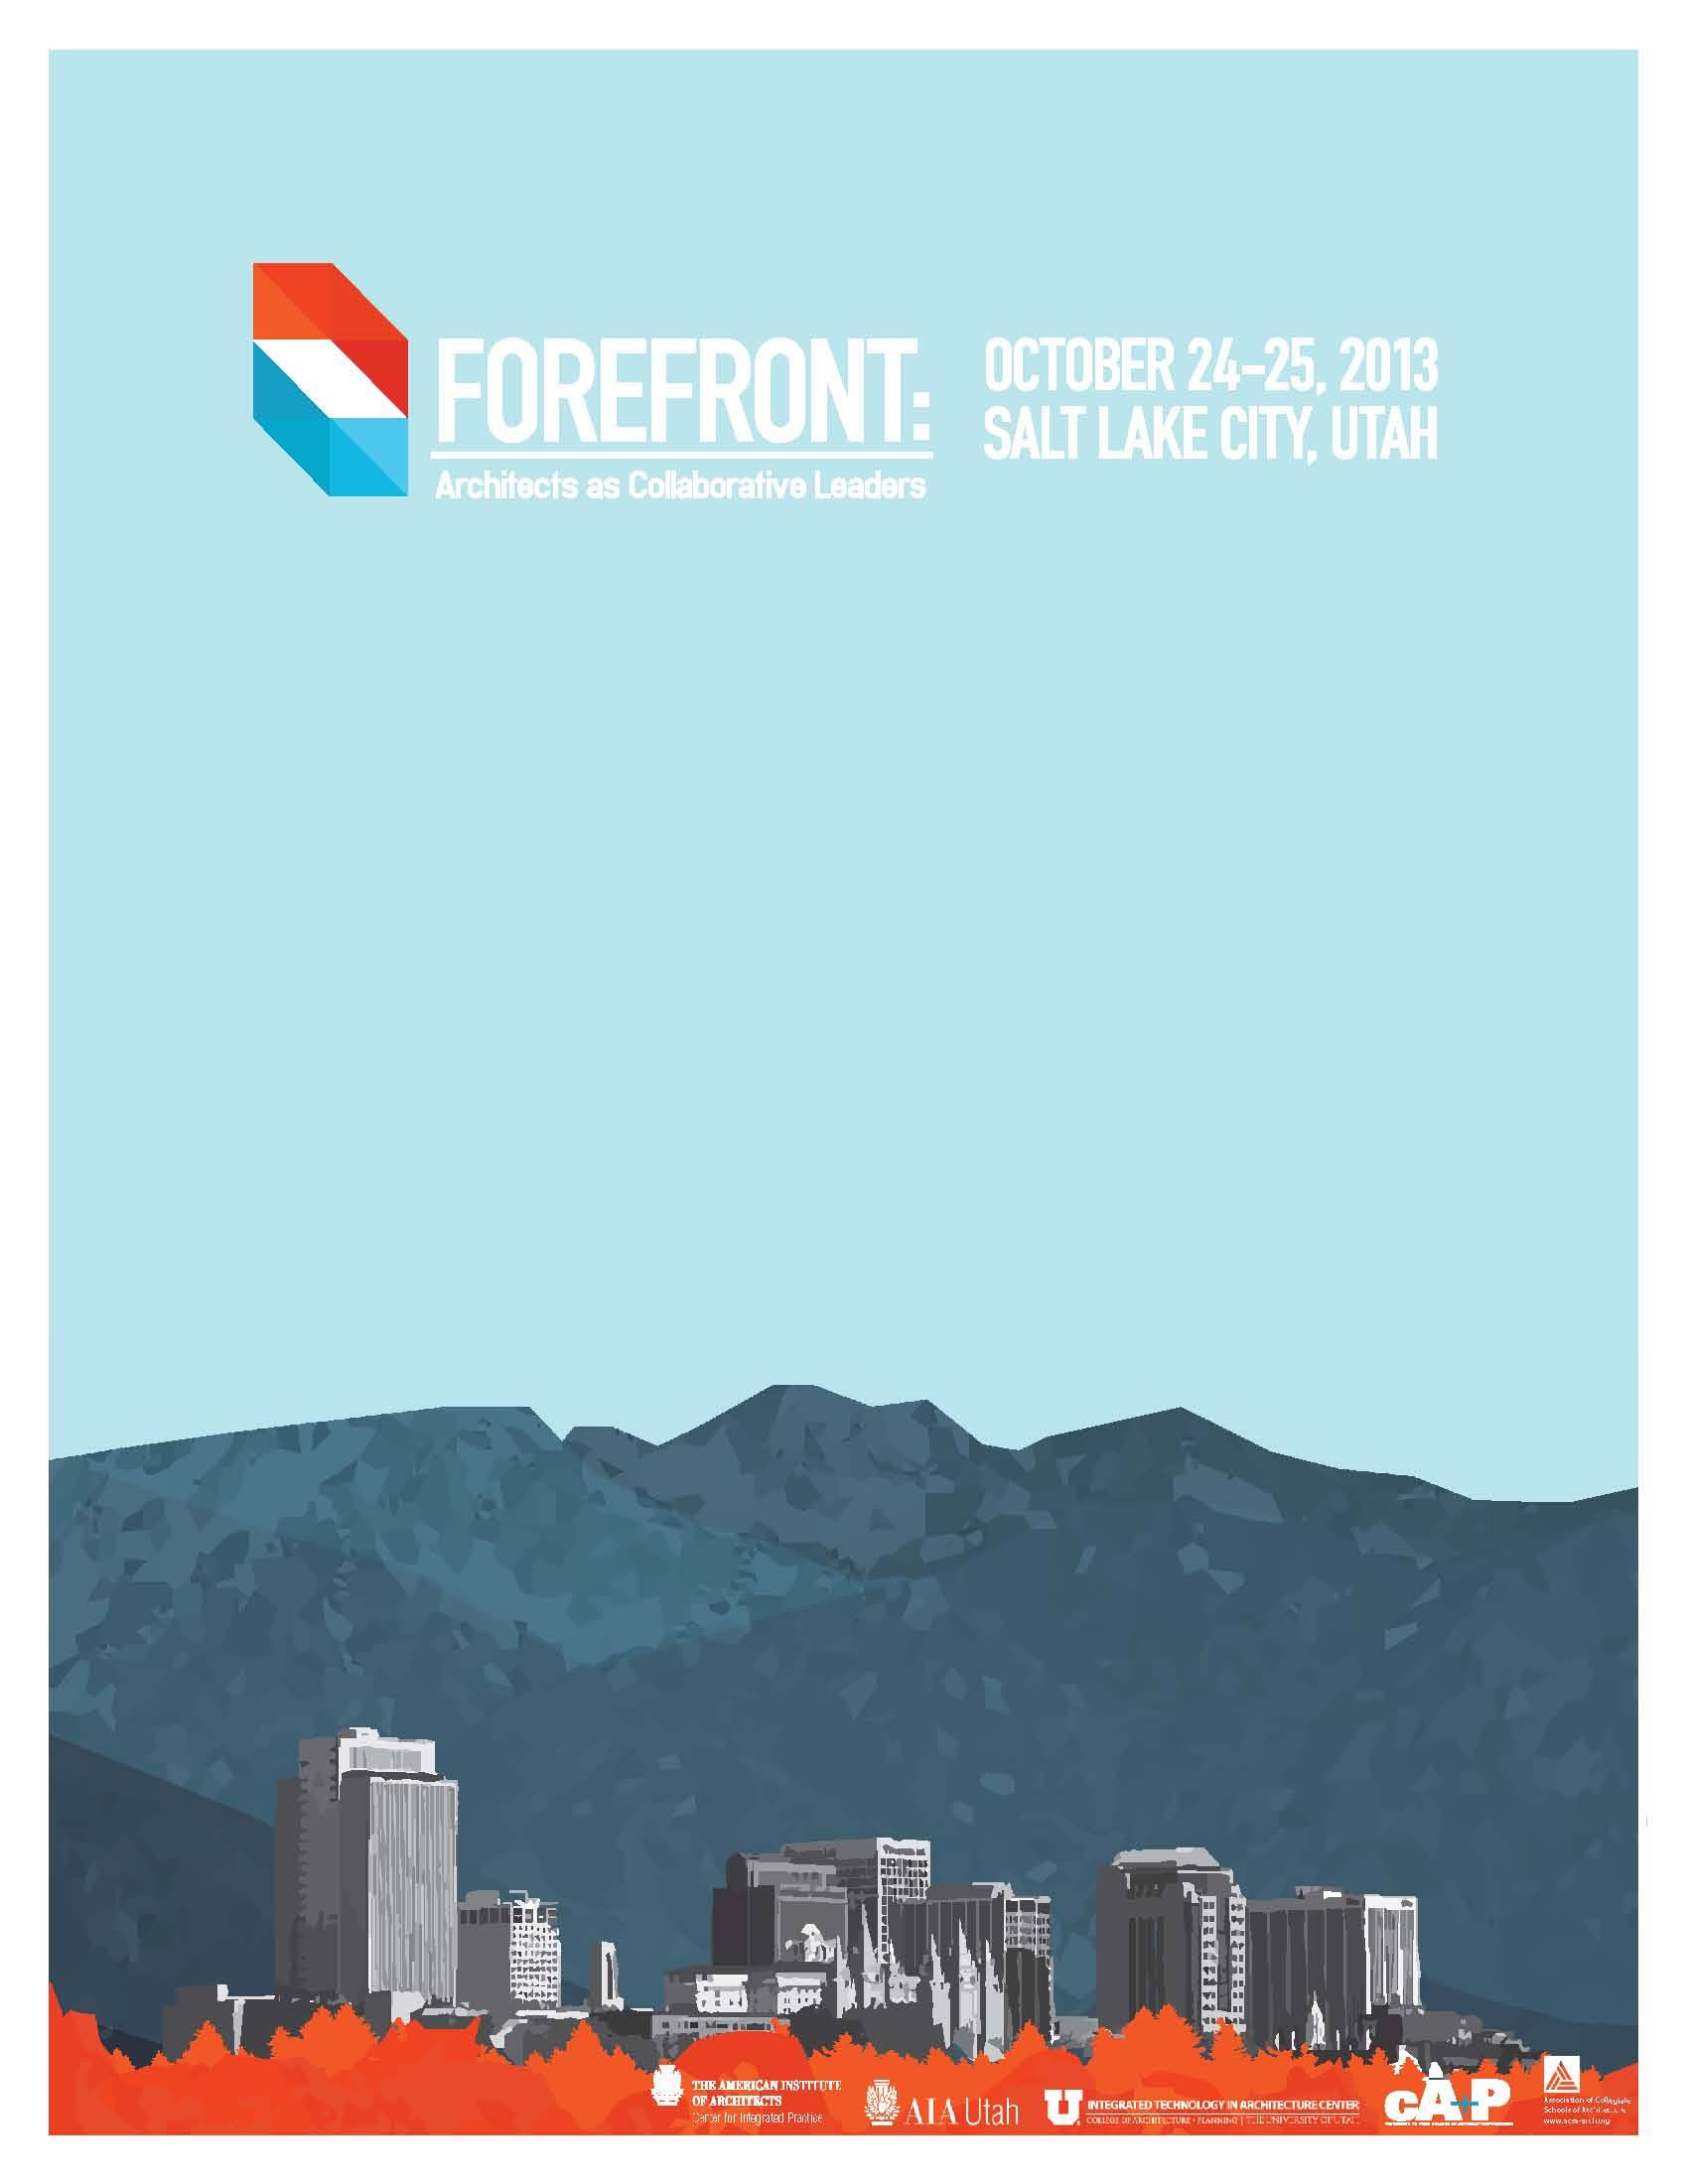 FOREFRONT Conference Program Cover